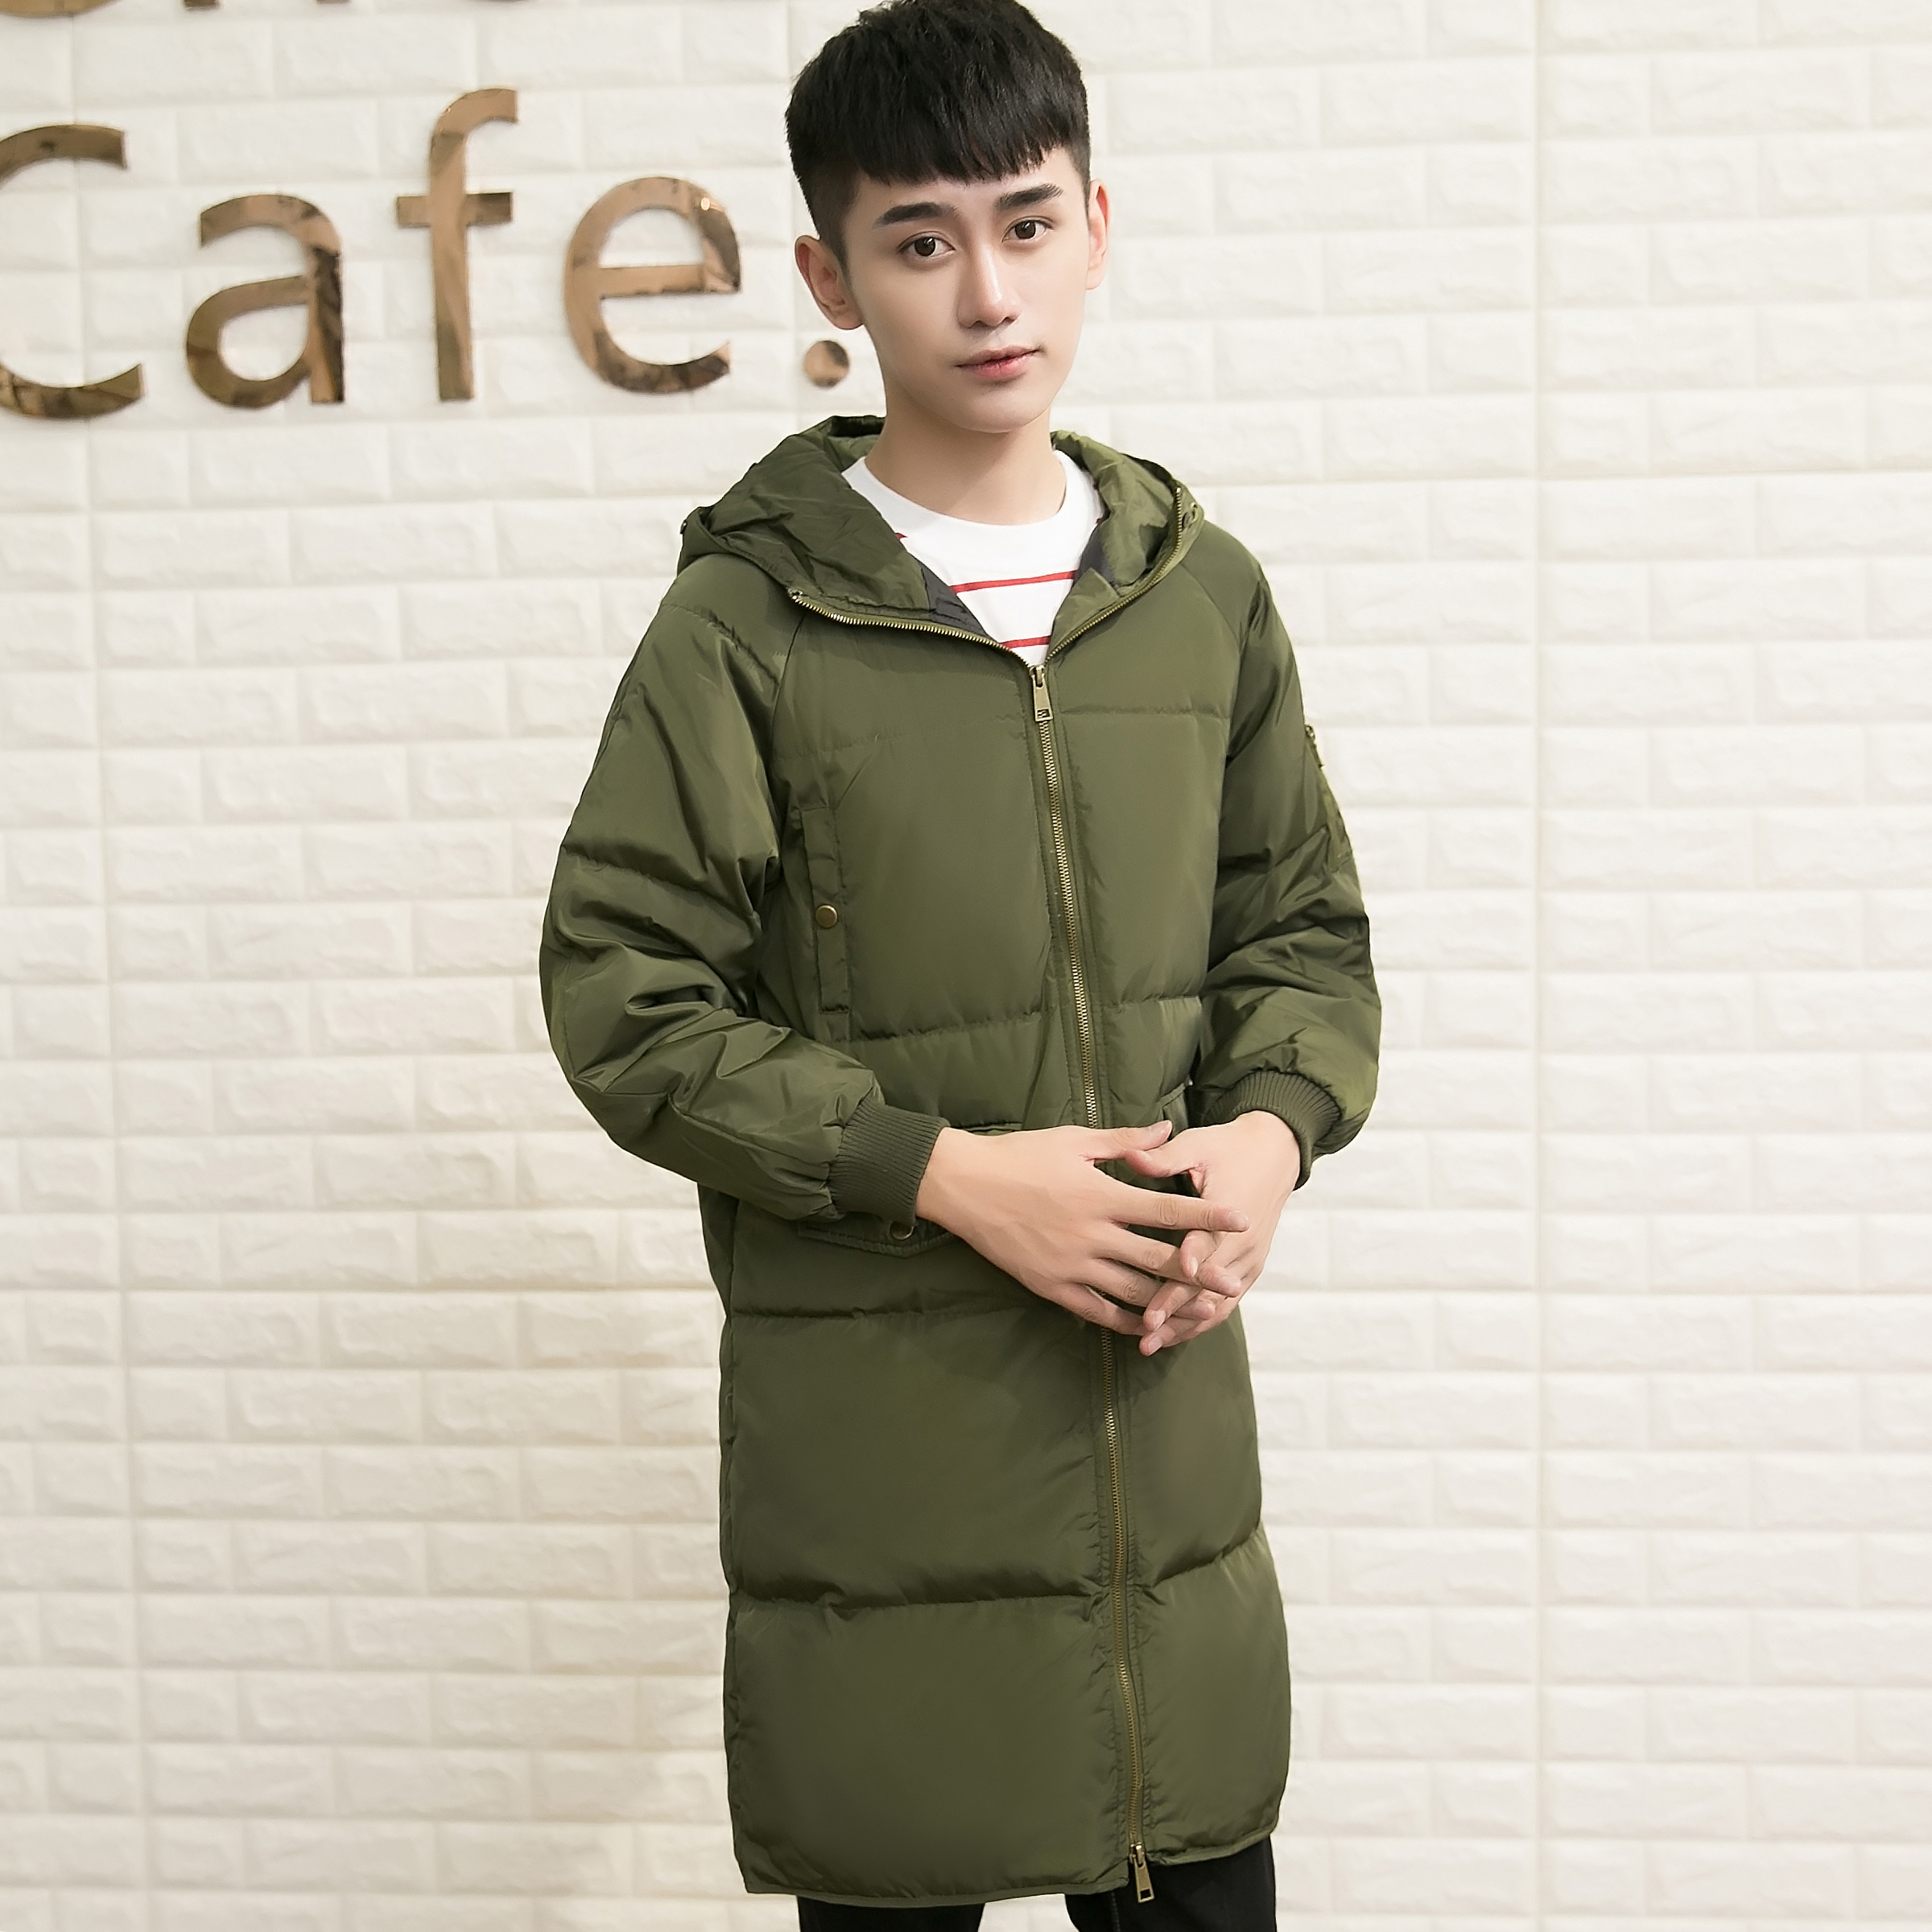 f1ed327f133 New Arrival Men s Long Down Coat Hooded Winter Jacket Men Warm Plus Size  Duck Down Jacket Lovers Clothes His-And-Her Coat S-3XL